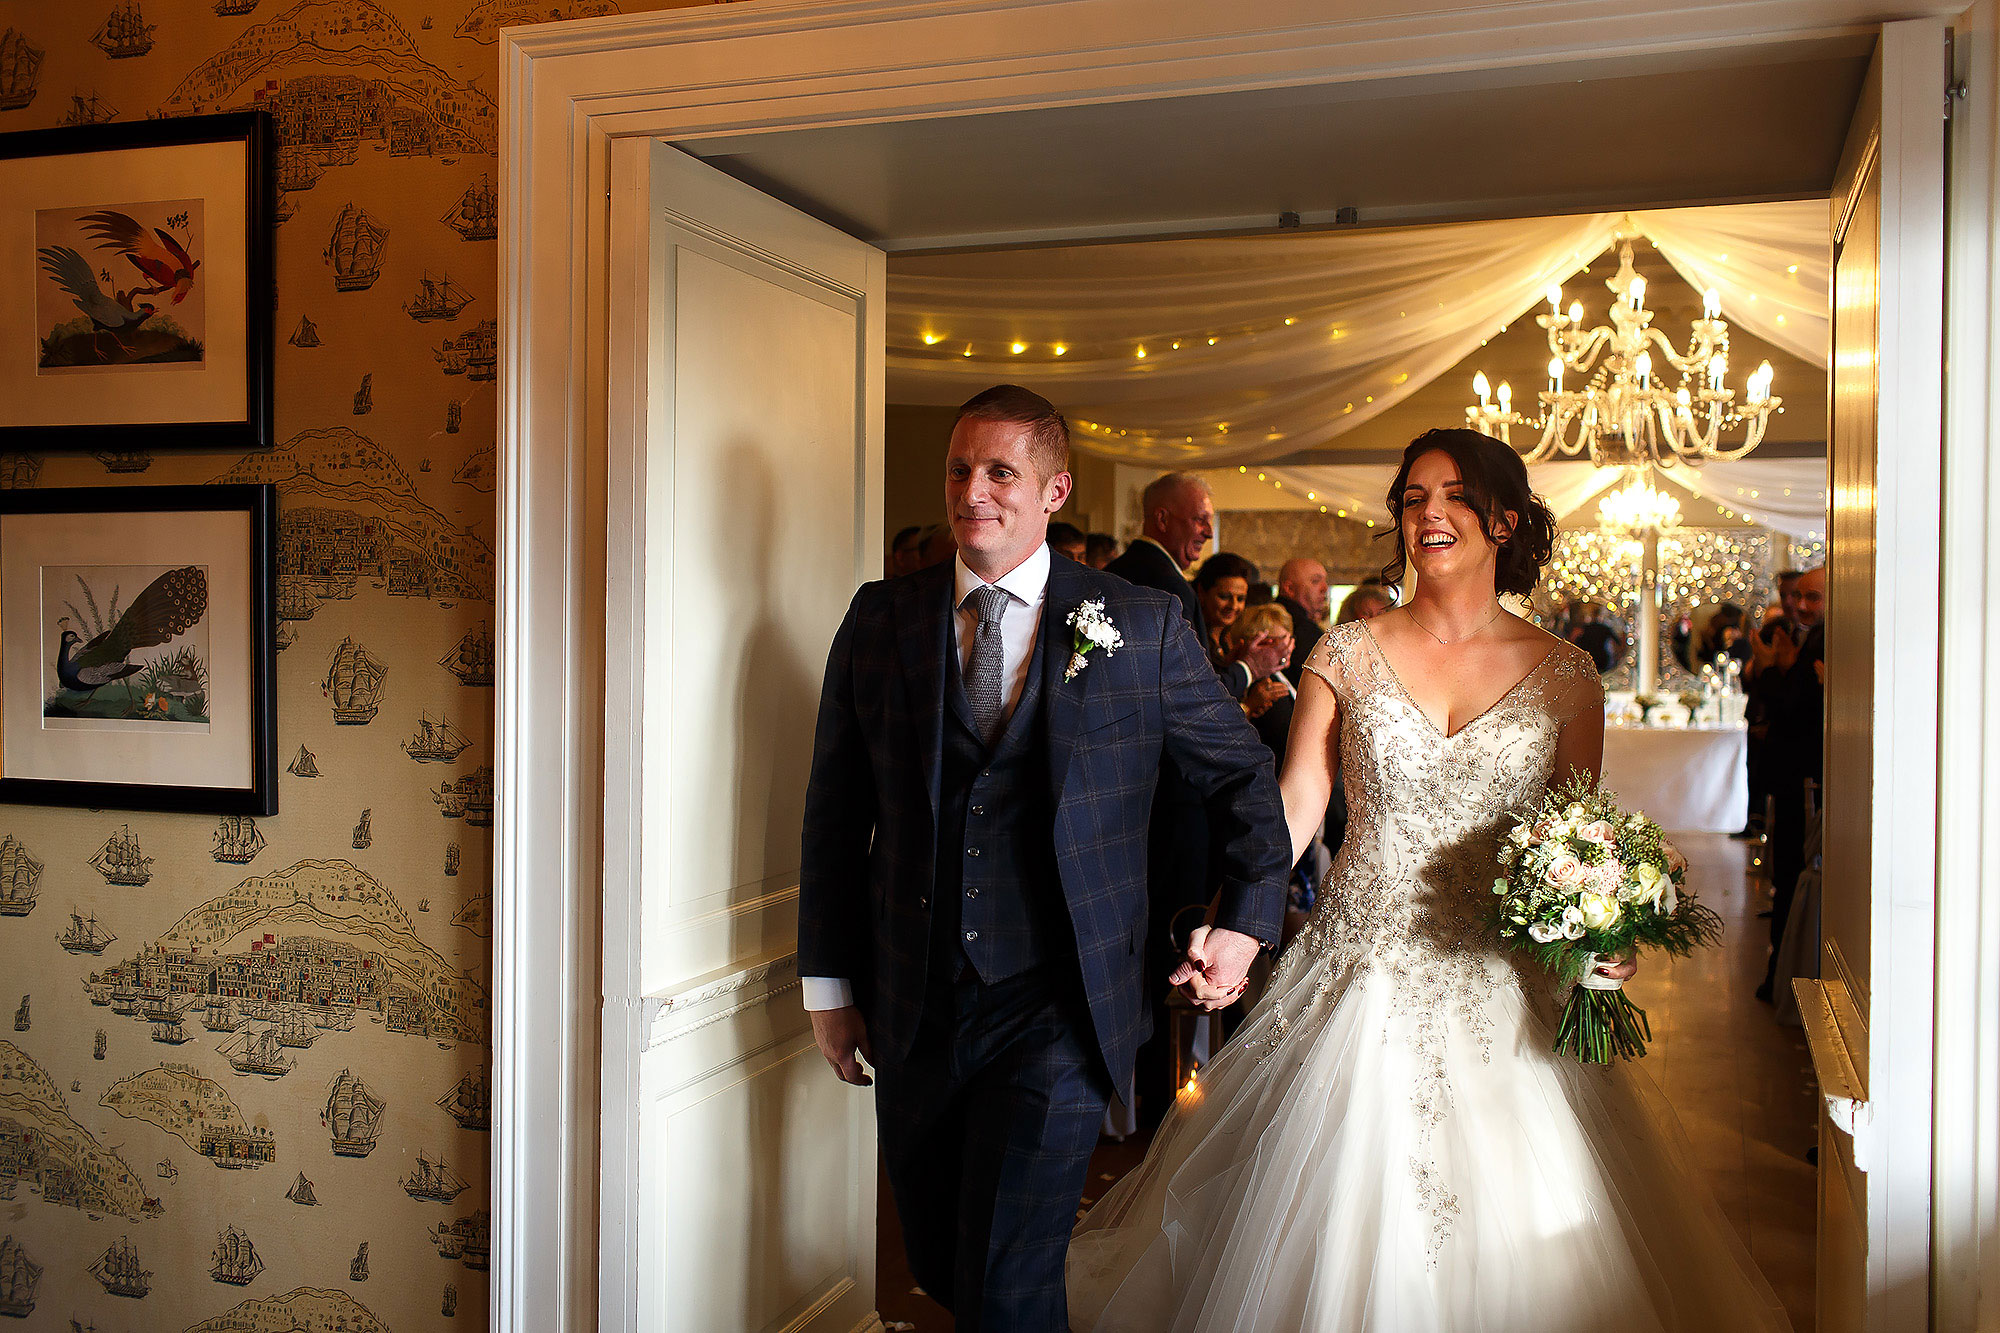 Bride and groom walking out of wedding ceremony | Eaves Hall wedding photography by Toni Darcy